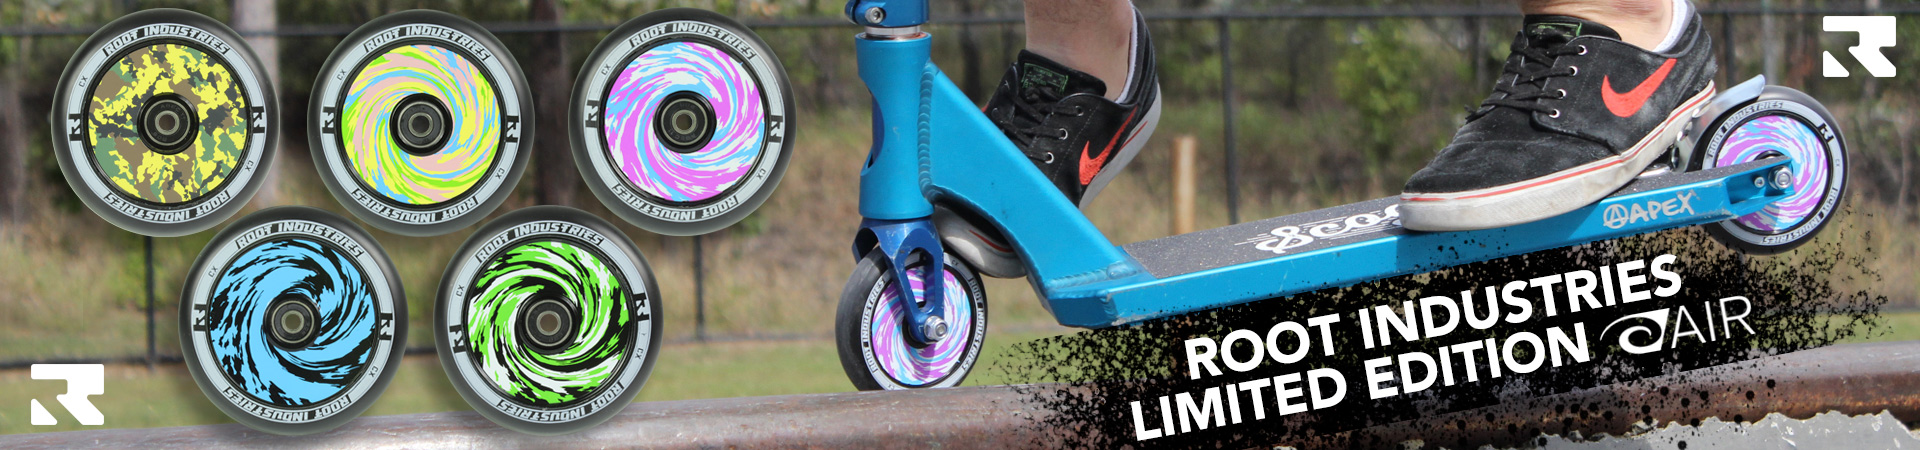 Root Industries Limited Edition AIR wheels | 110 or 120mm